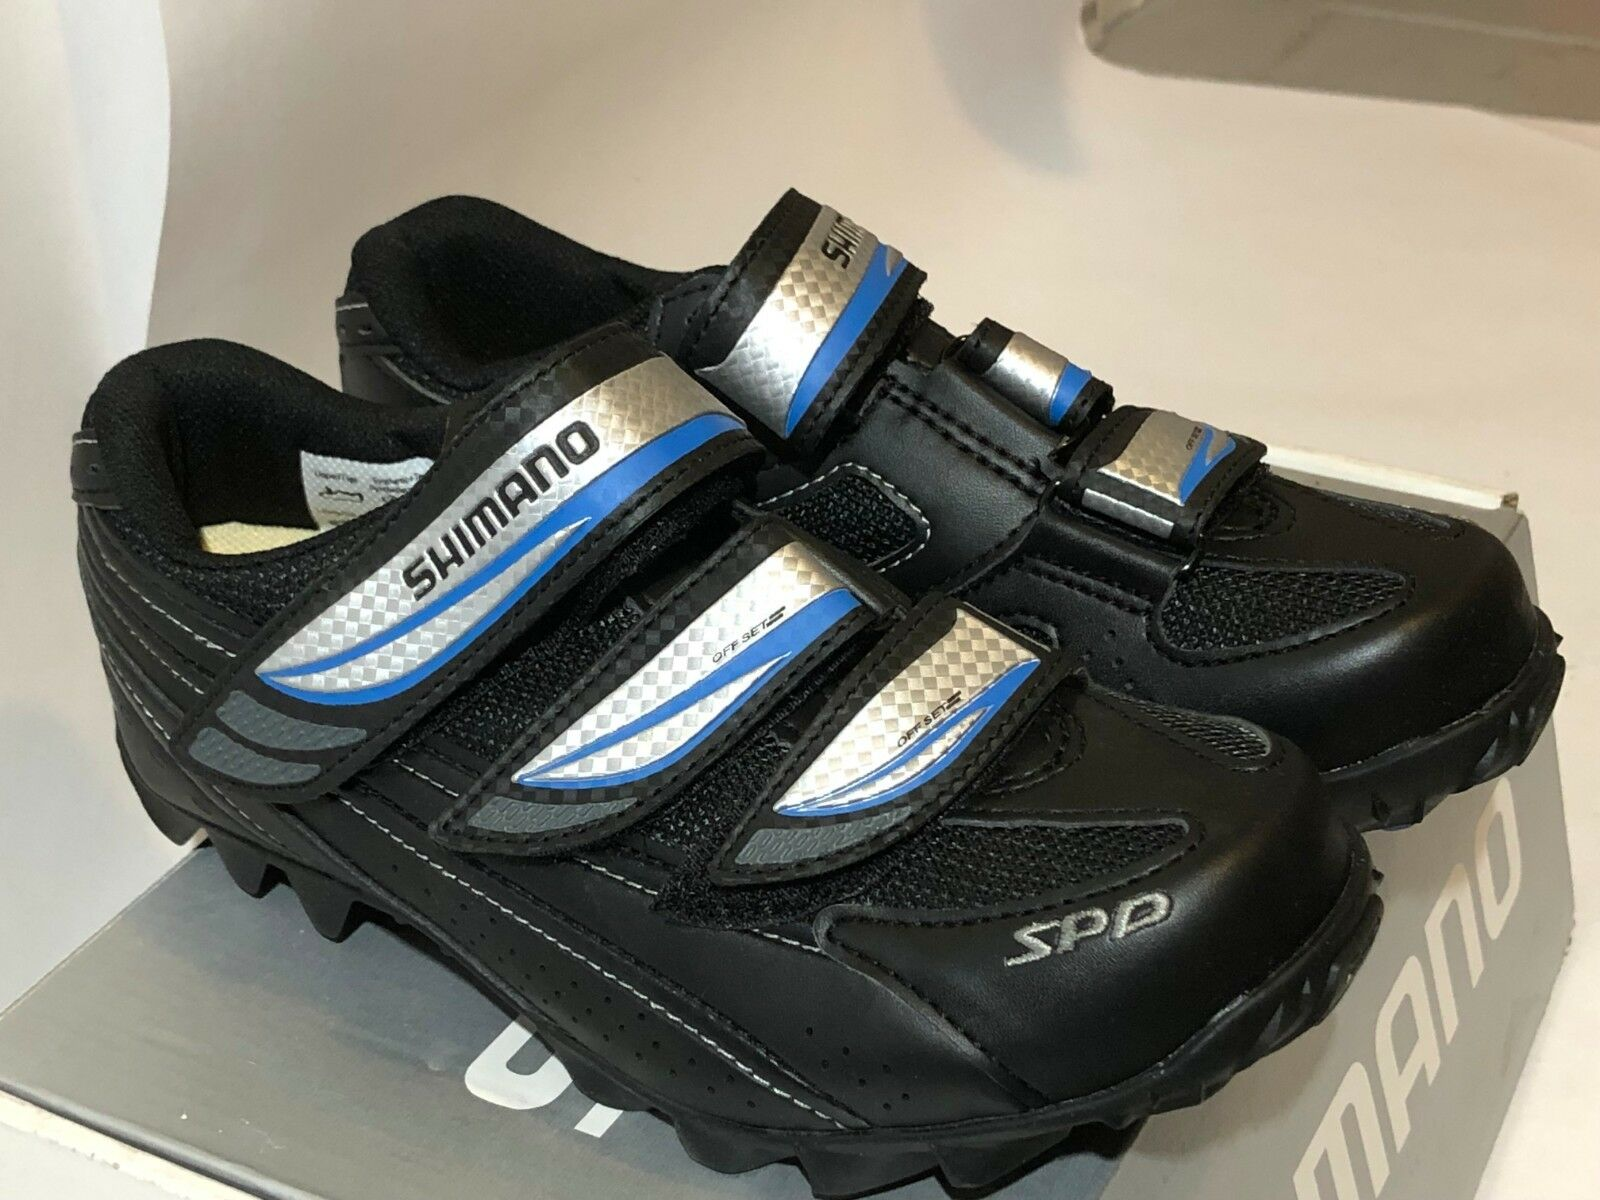 New Shimano SH-WM51 Cycling Mountain Biking shoes